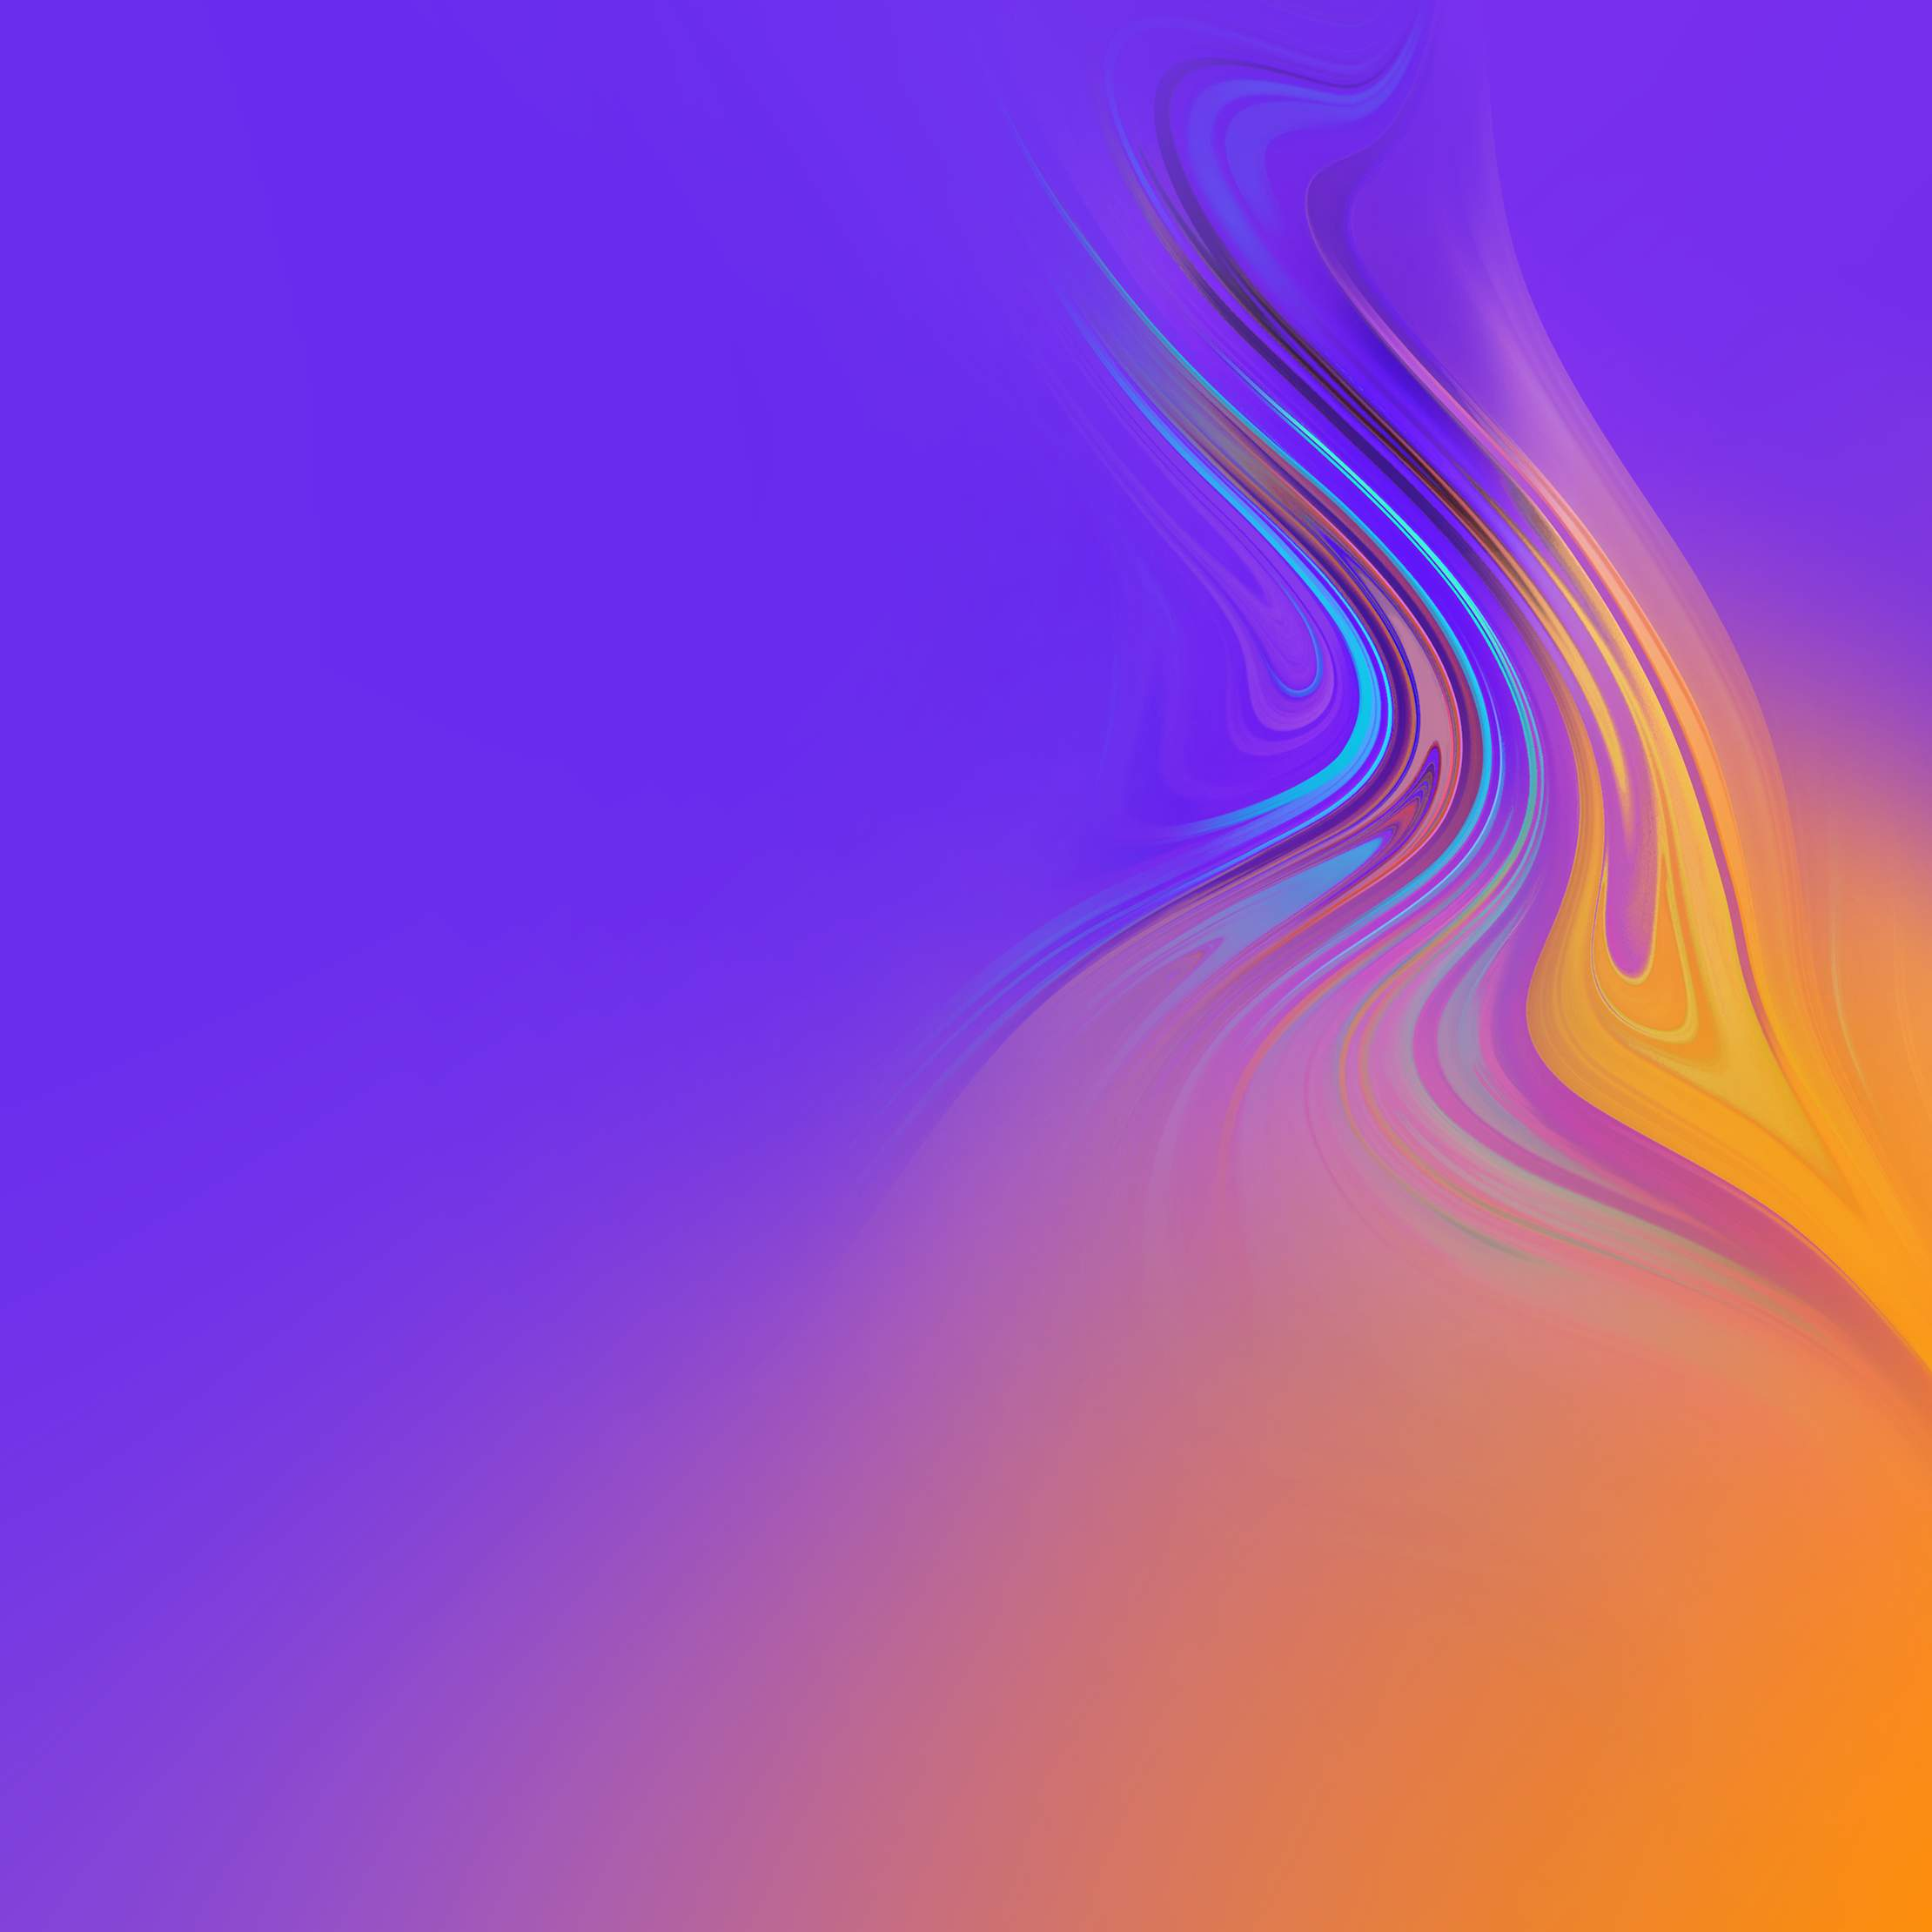 Samsung Galaxy M30 Wallpapers Top Free Samsung Galaxy M30 Backgrounds Wallpaperaccess